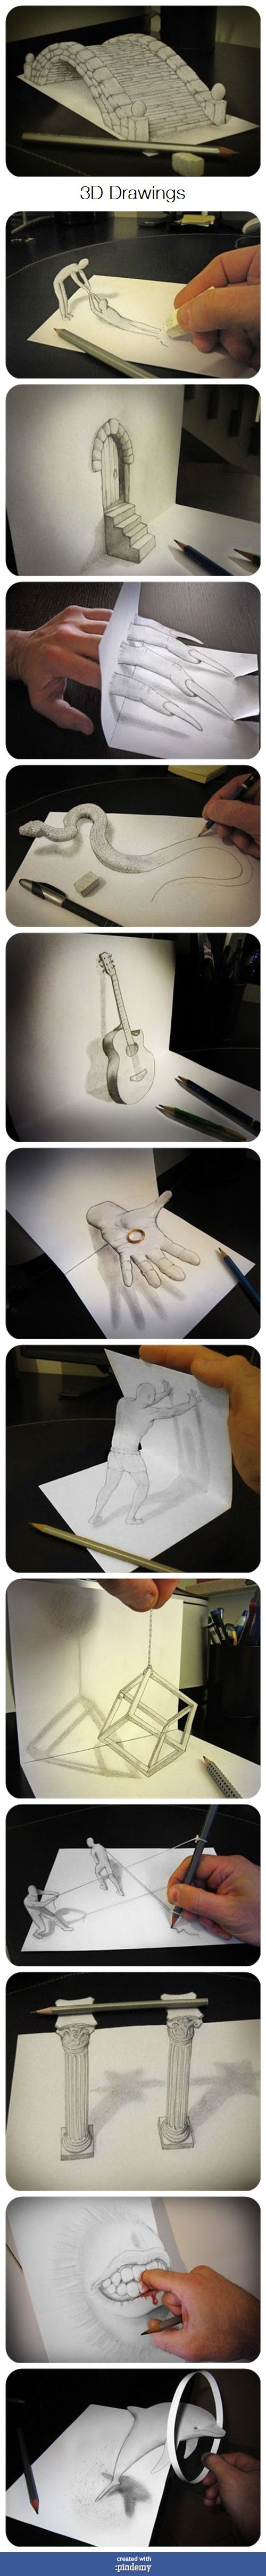 3D Drawings via pindemy.com